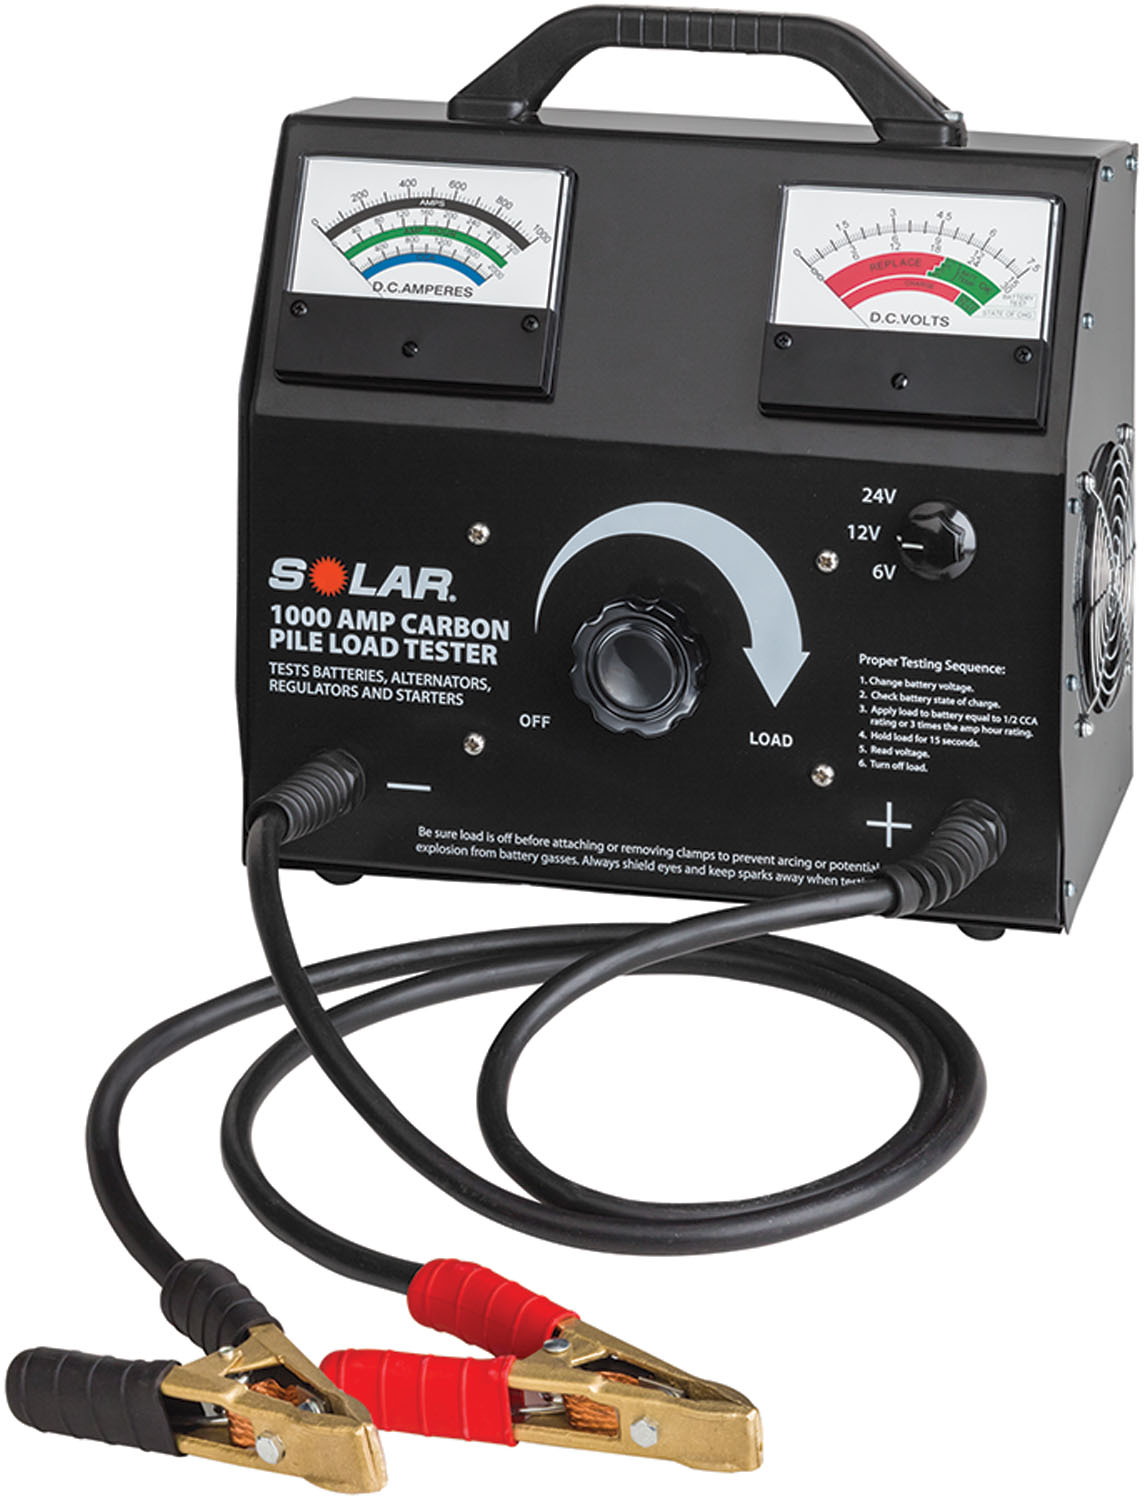 Solar 1000 Amp Variable Load  Carbon Pile Tester